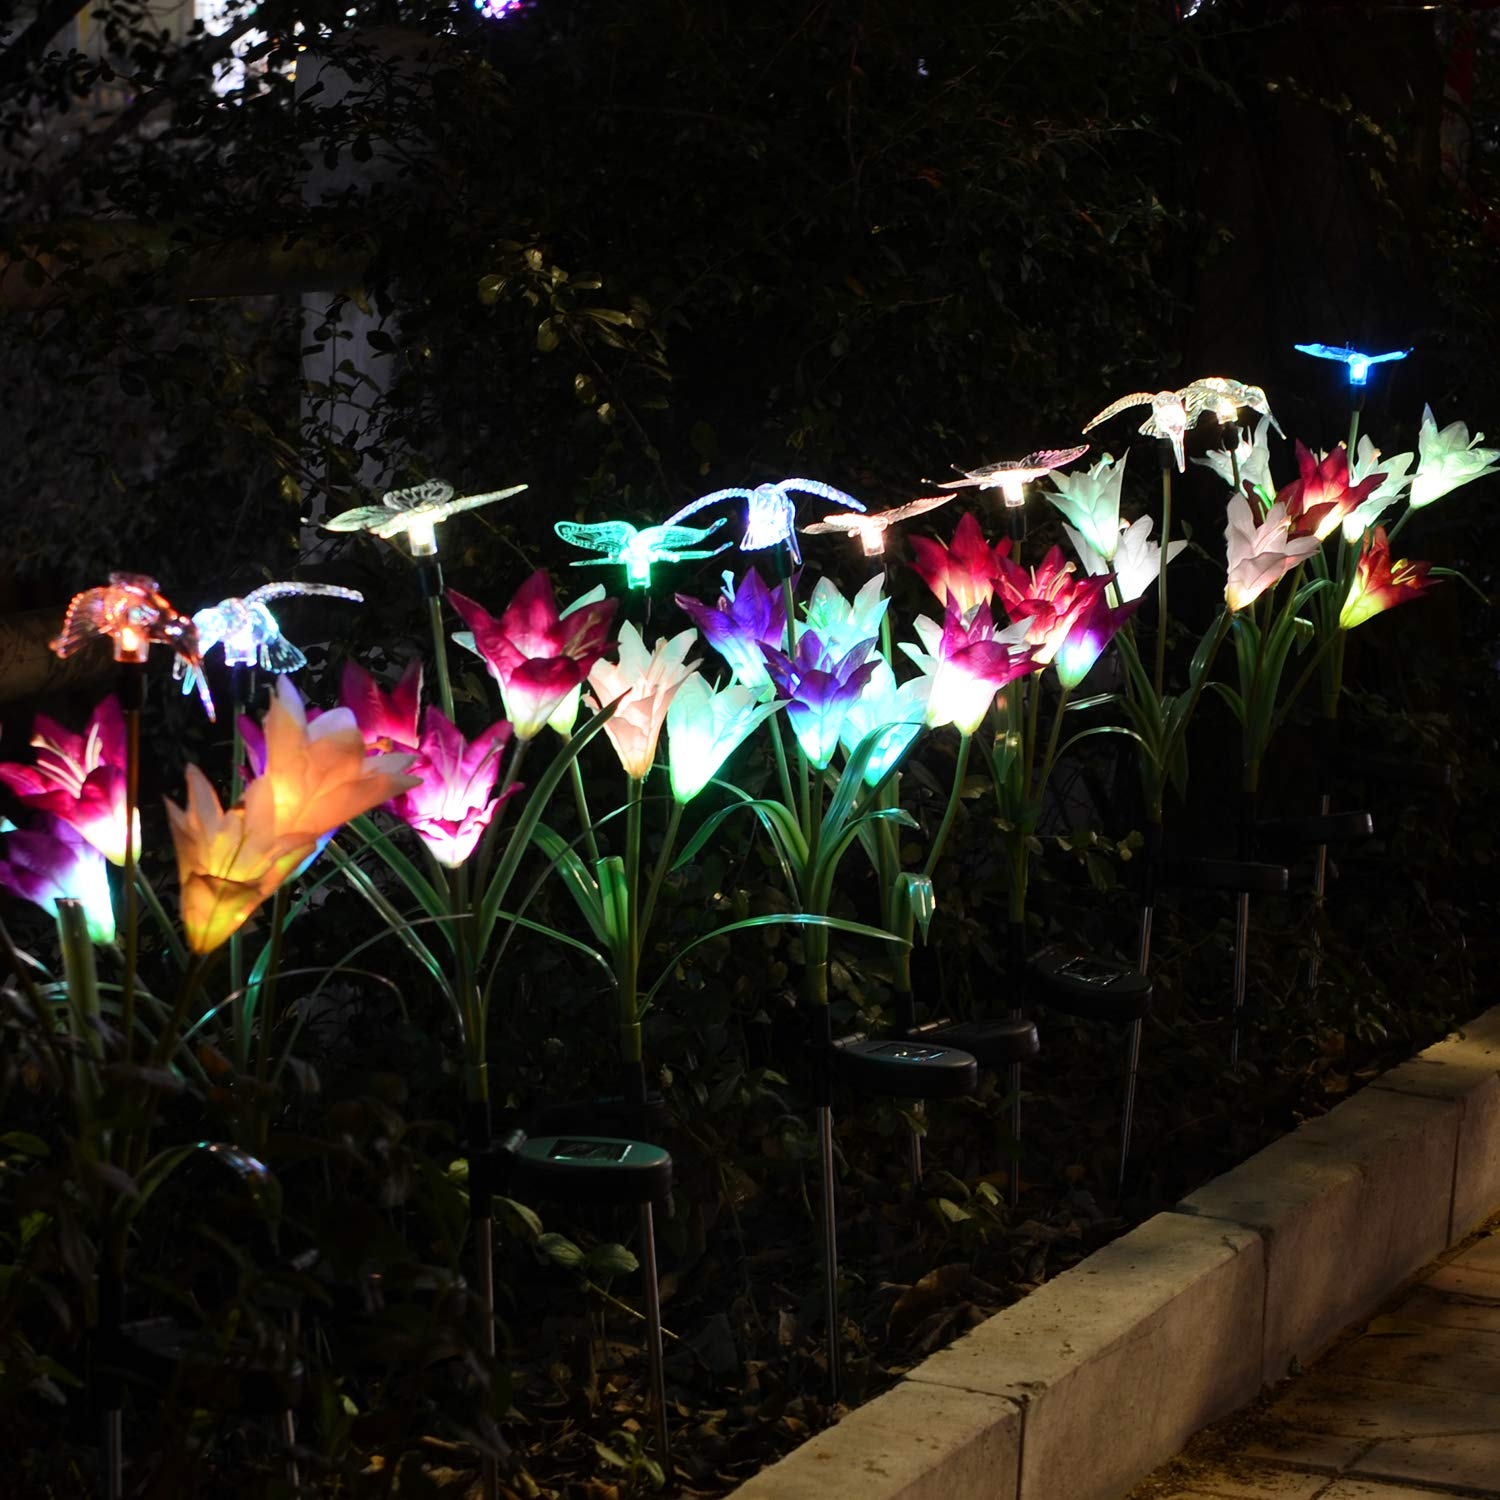 SOLAR GARDEN DECORATIONS ARTIFICIAL GLOWING FLOWERS WITH LED LIGHT FROM CHINA FACTORY